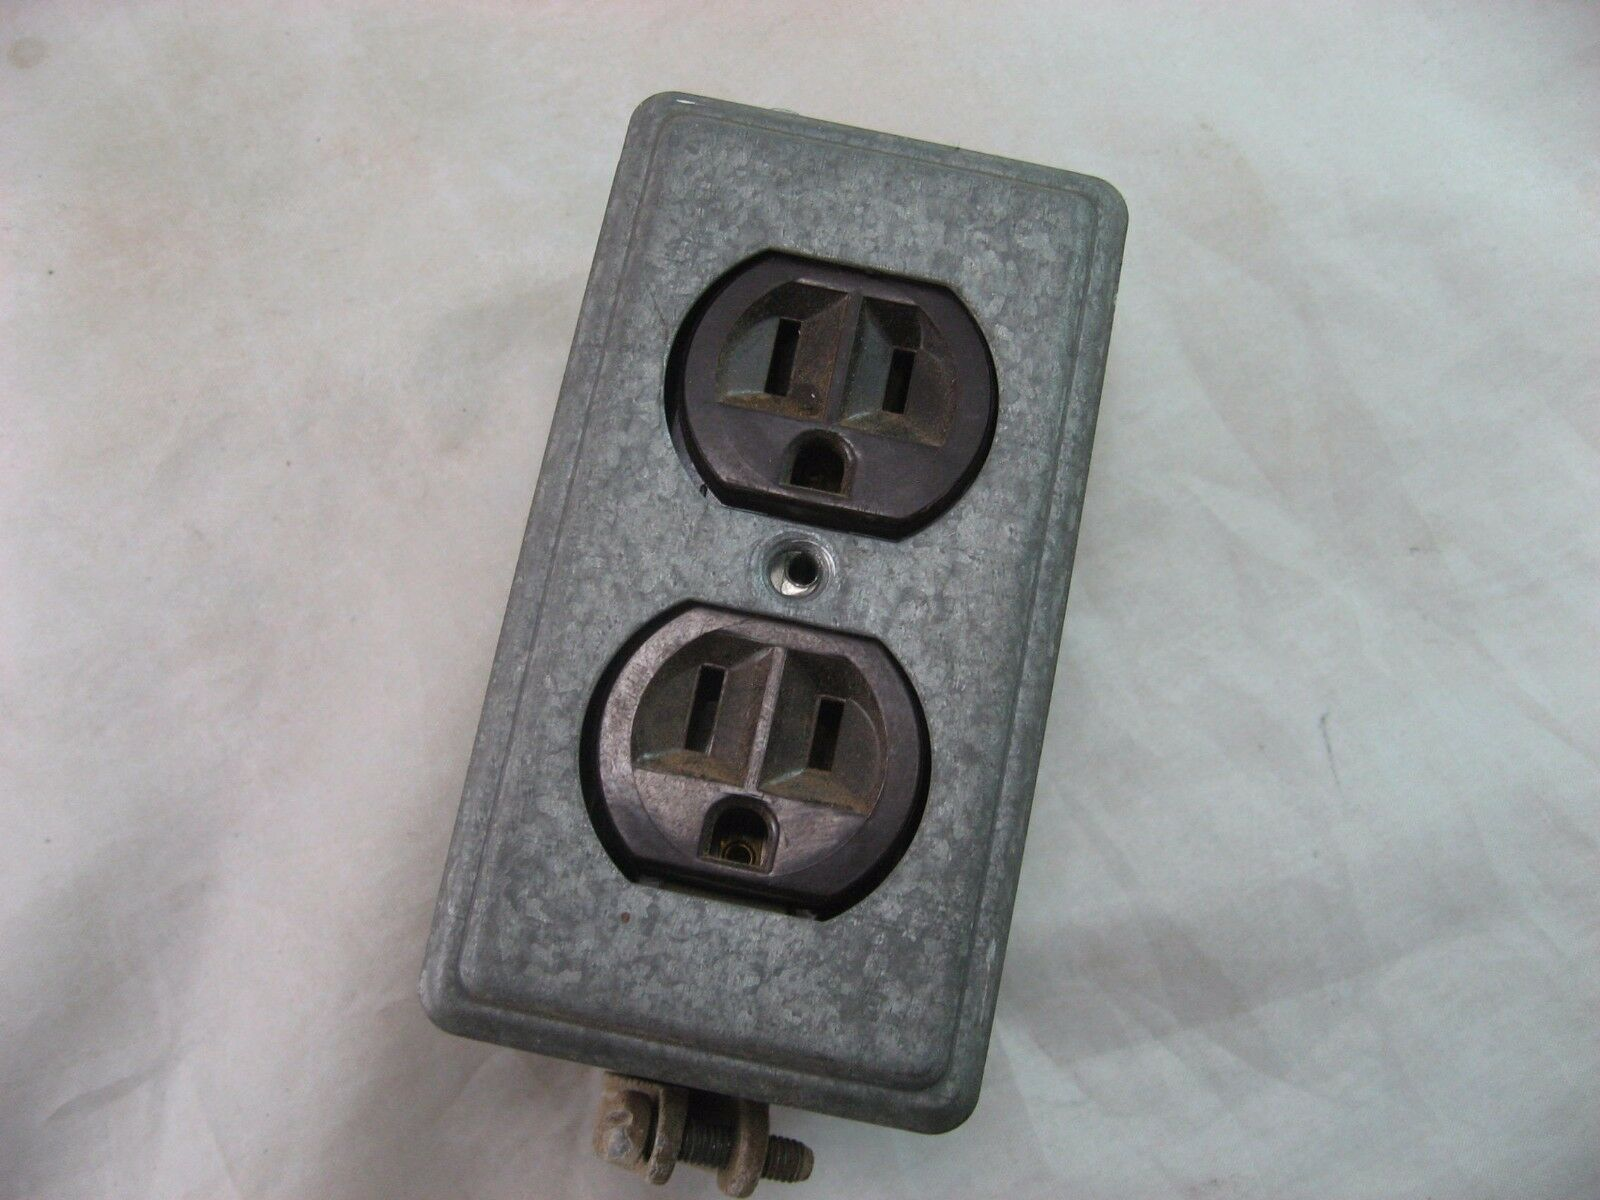 Rodale Double Electrical Outlet W/Metal Cover 3-Prong Heavy Duty Vintage